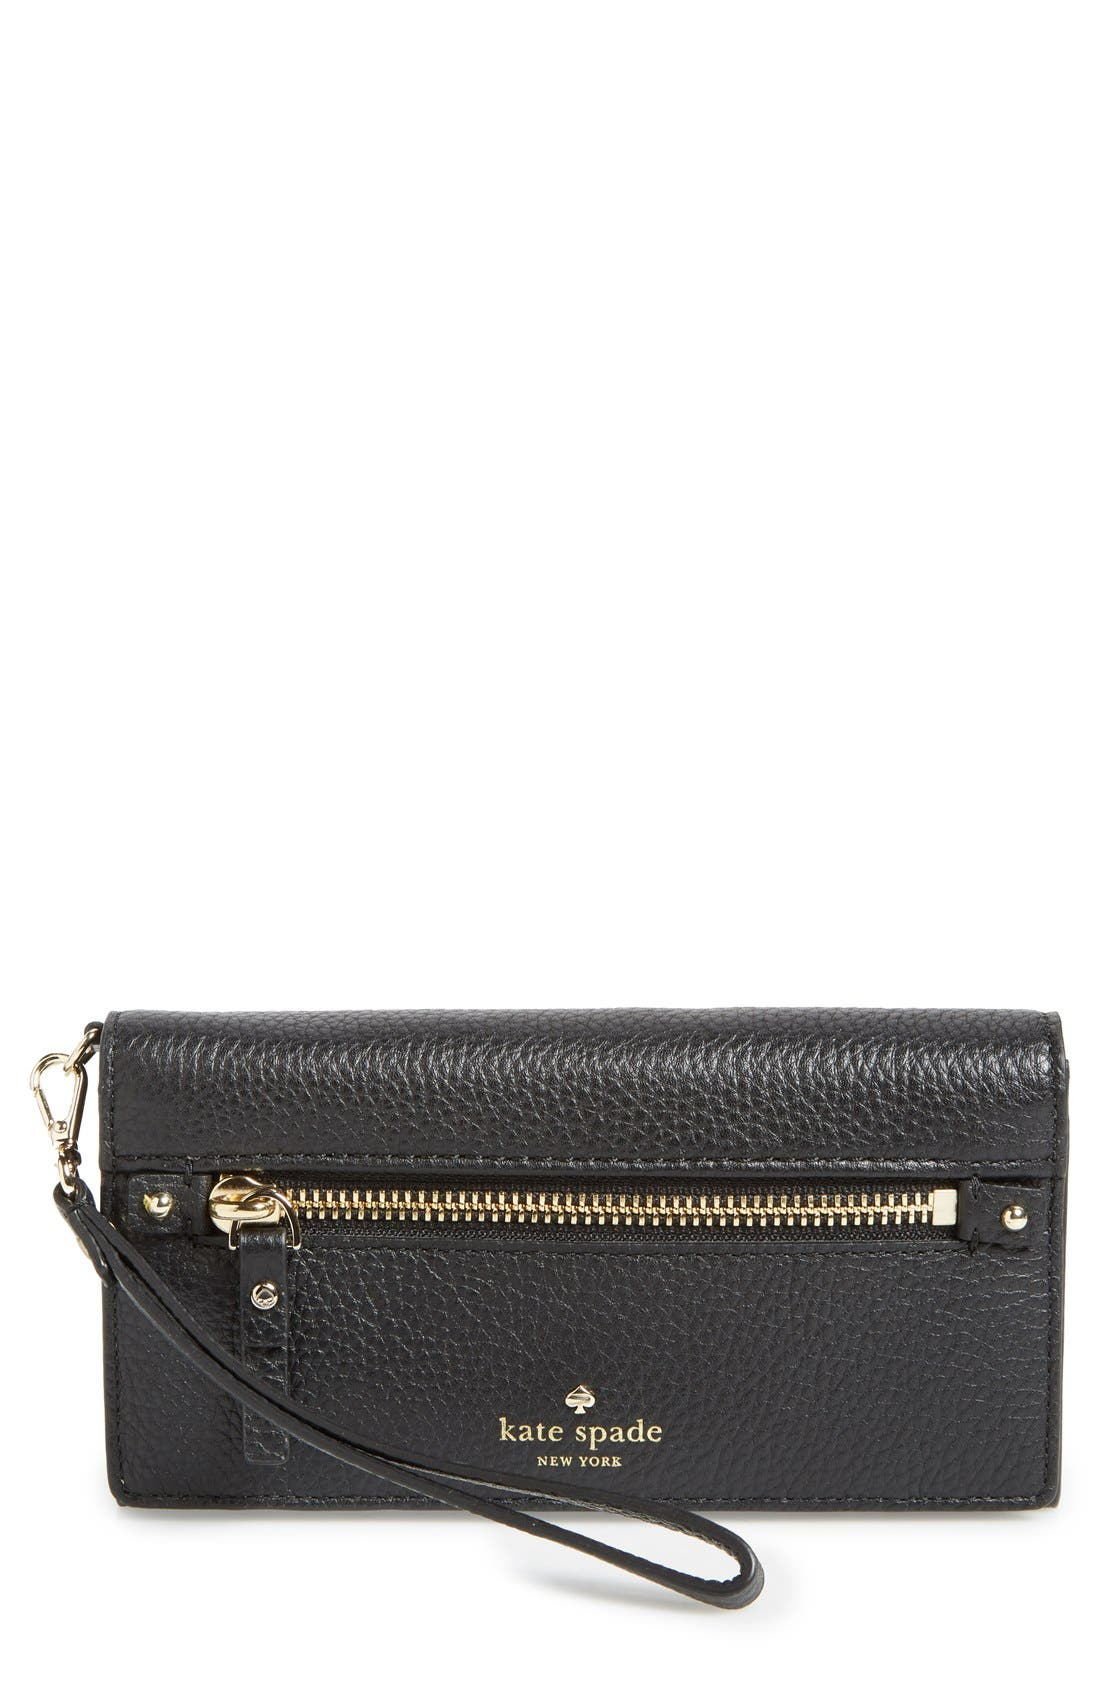 Alternate Image 1 Selected - kate spade new york 'cobble hill - rae' leather wristlet wallet